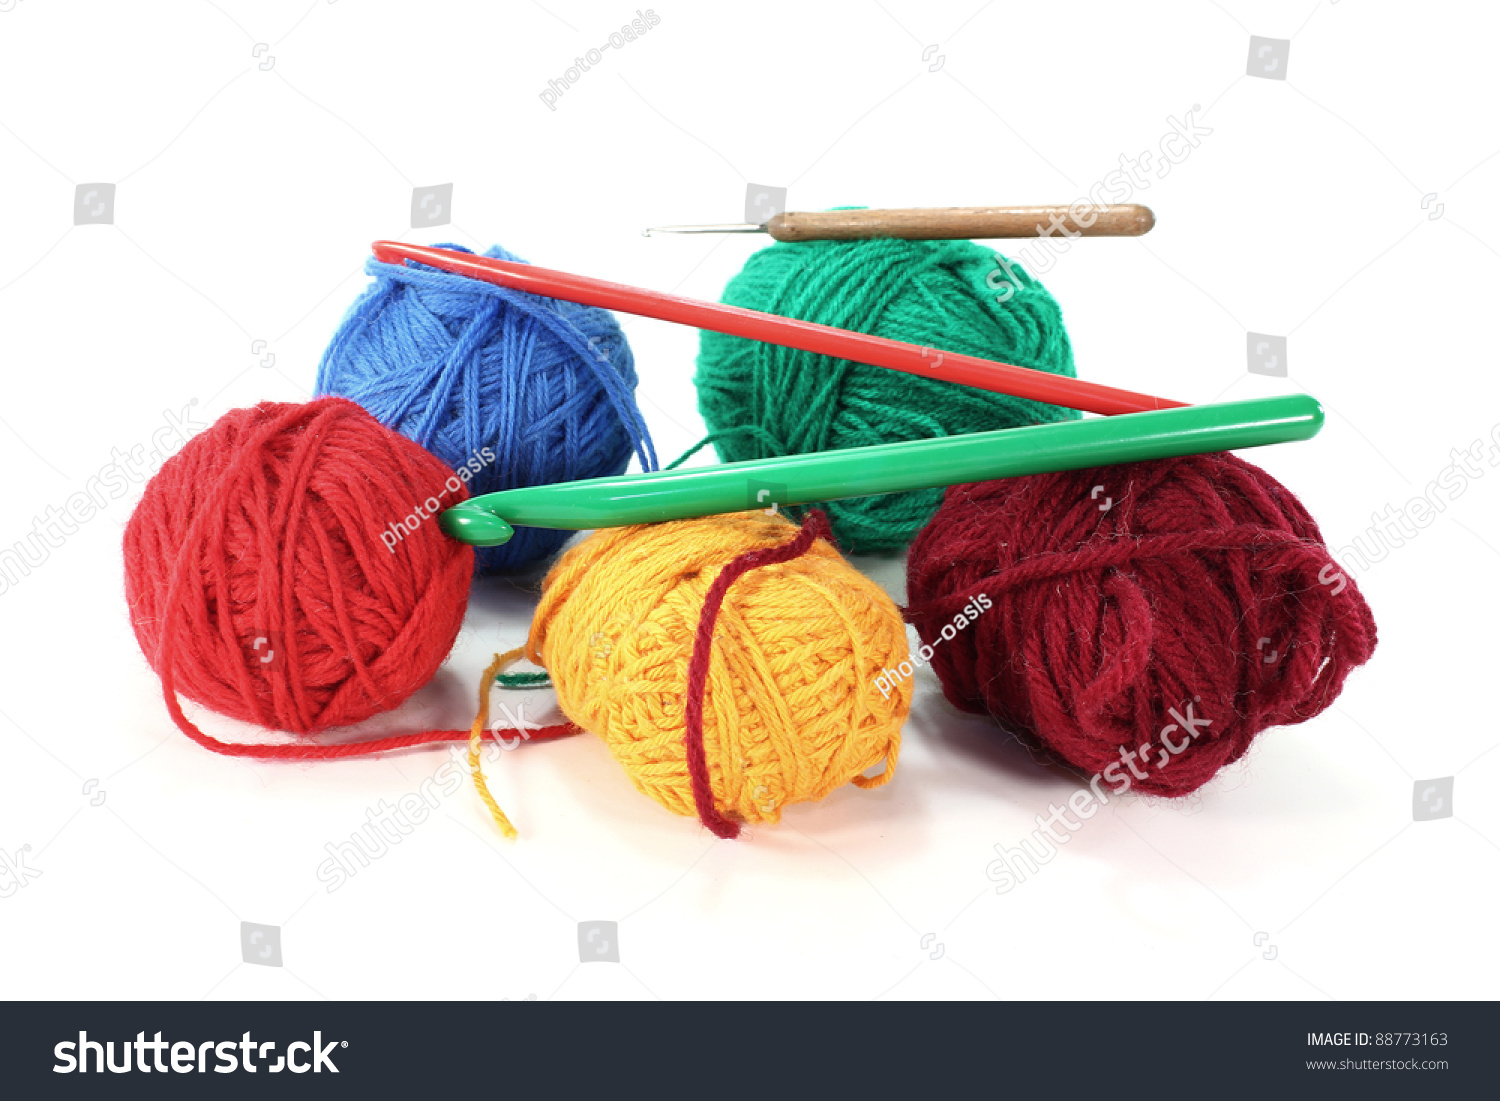 Crocheting Needles And Yarn : Crocheting Needles And Yarn Many colorful woolen yarn with crochet ...